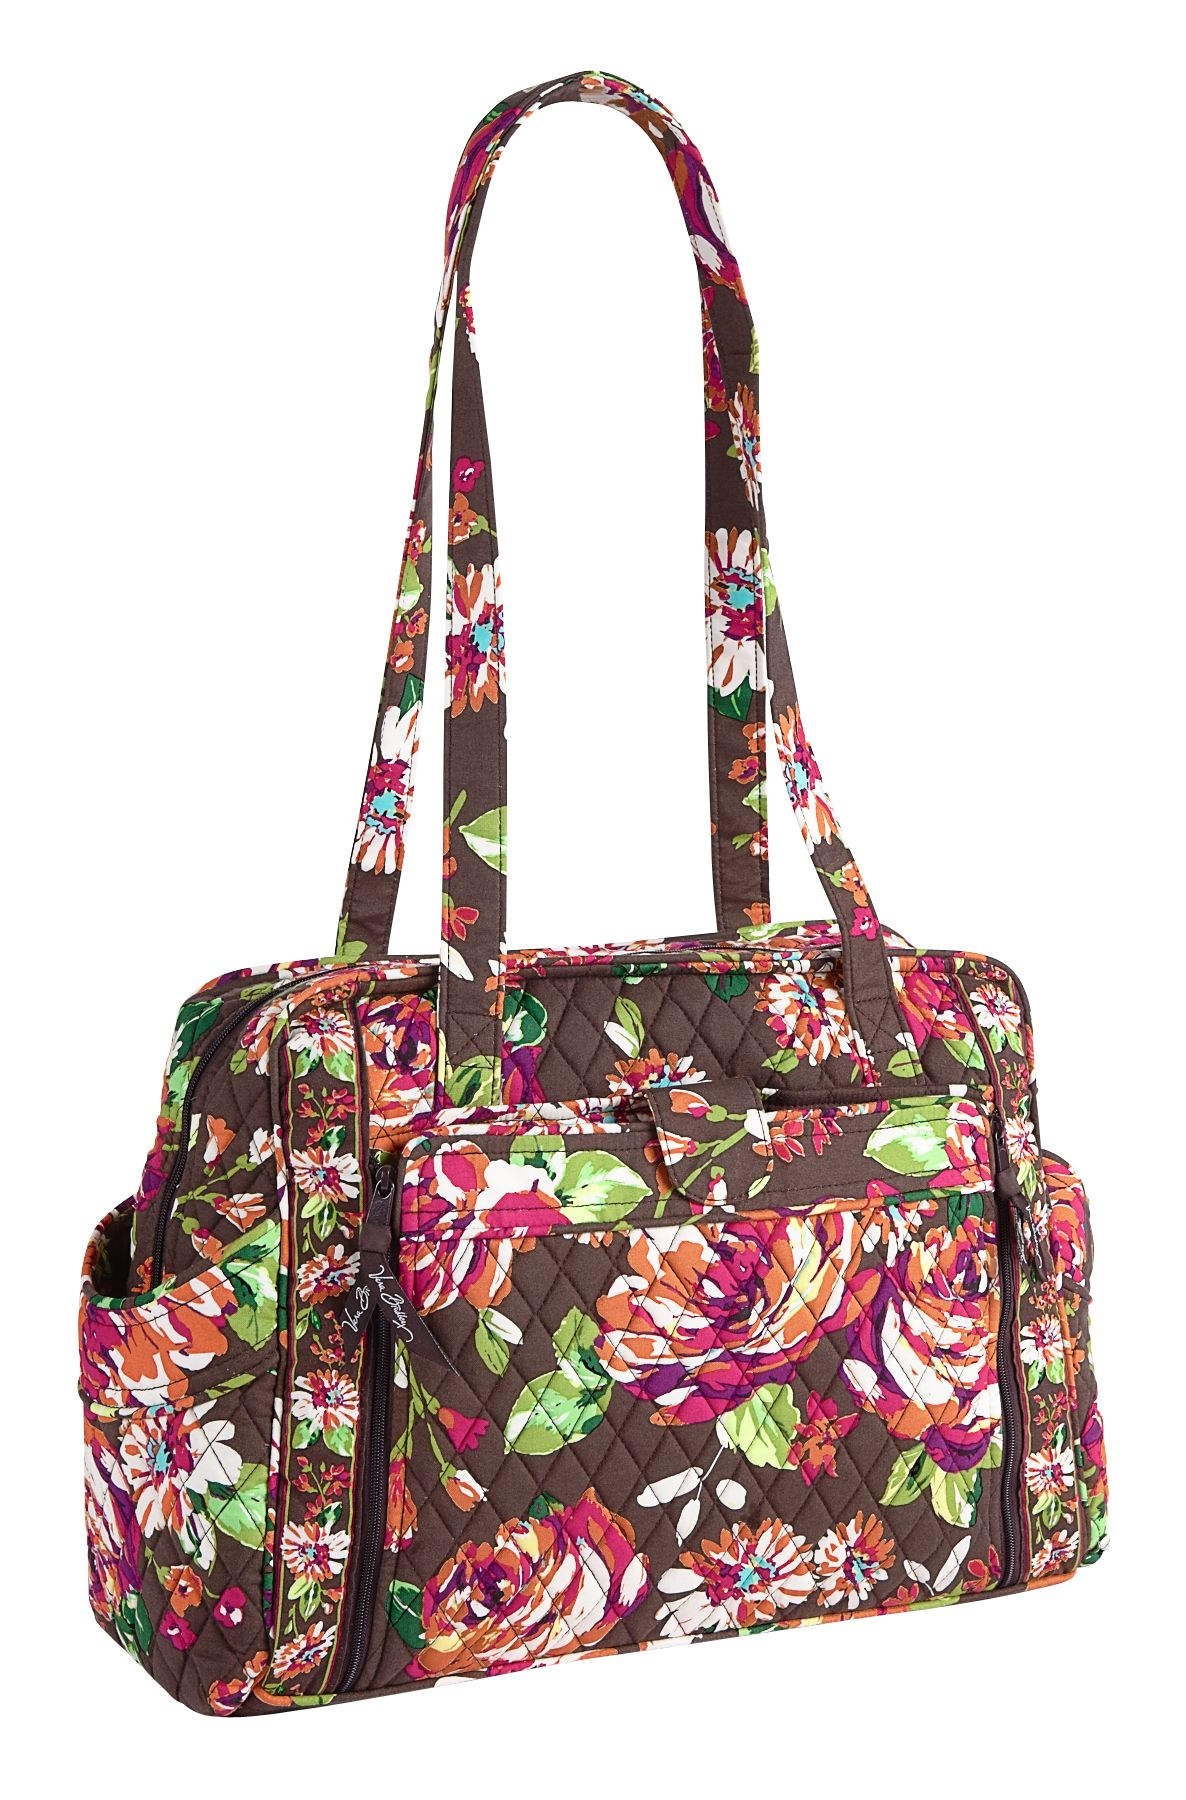 Find great deals on eBay for vera bradley 70% off. Shop with confidence.